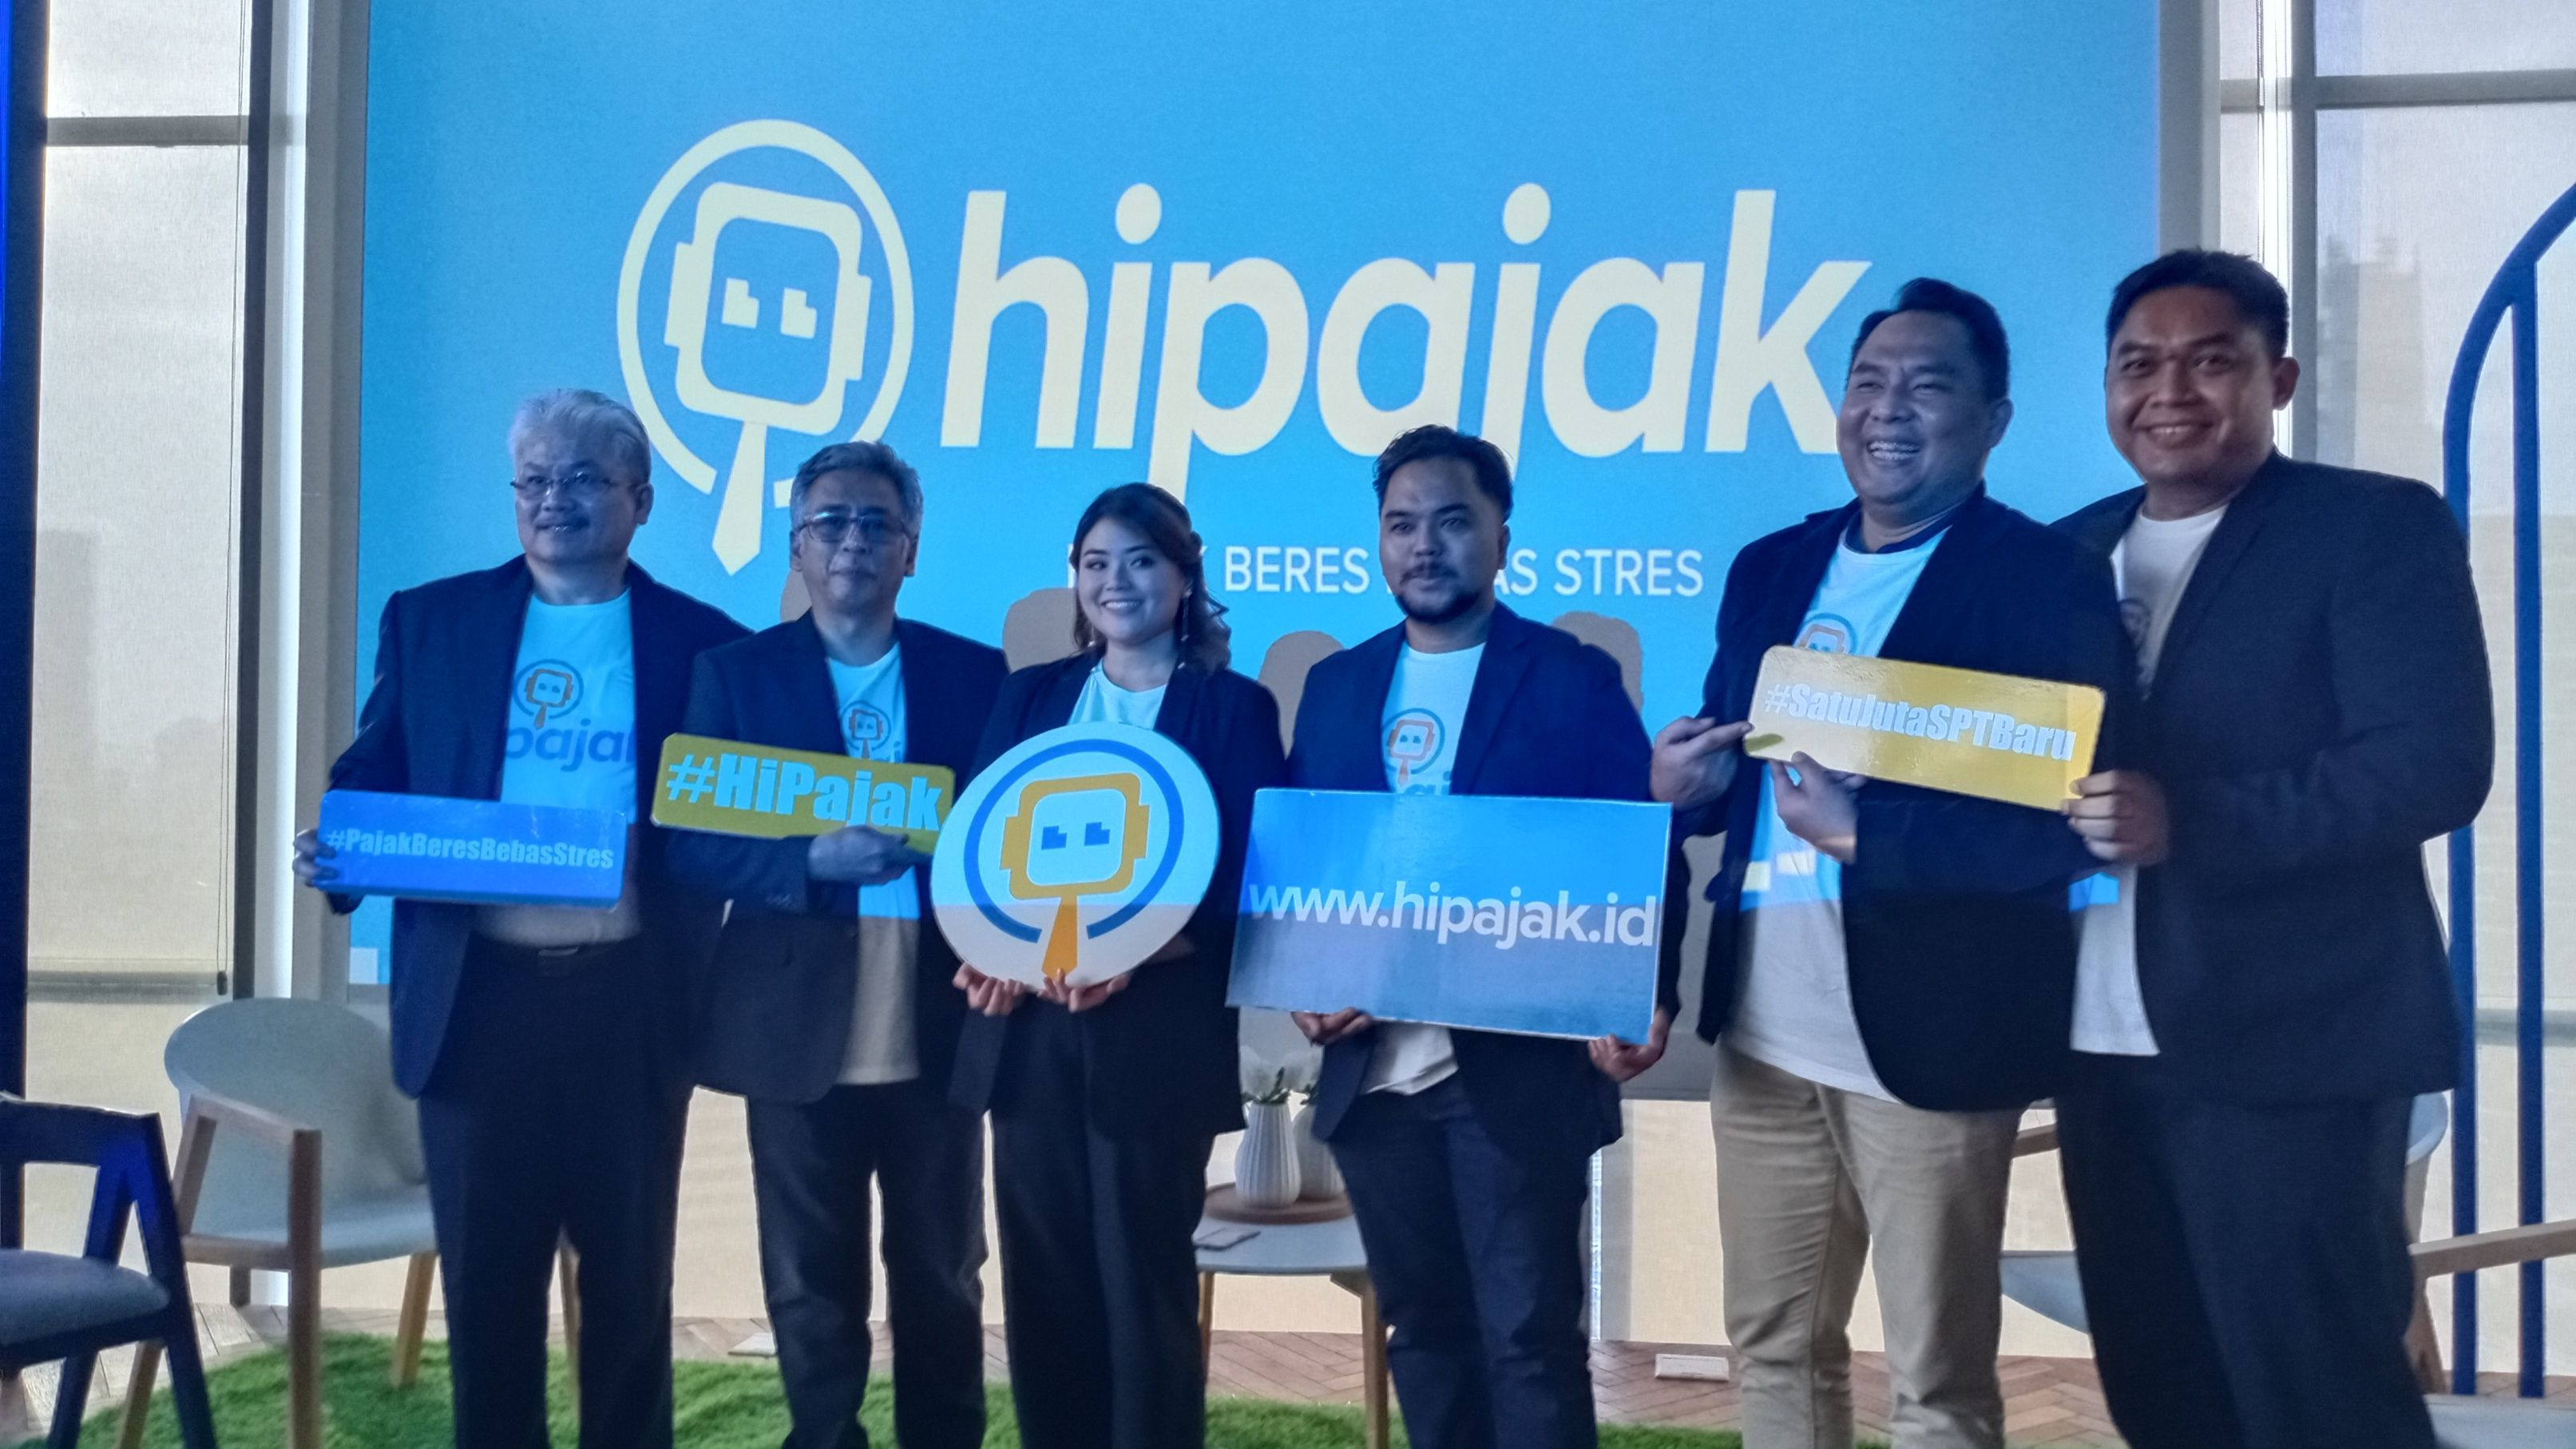 Targeting YouTubers and Online Sellers, HiPajak Provides Tax Report Service